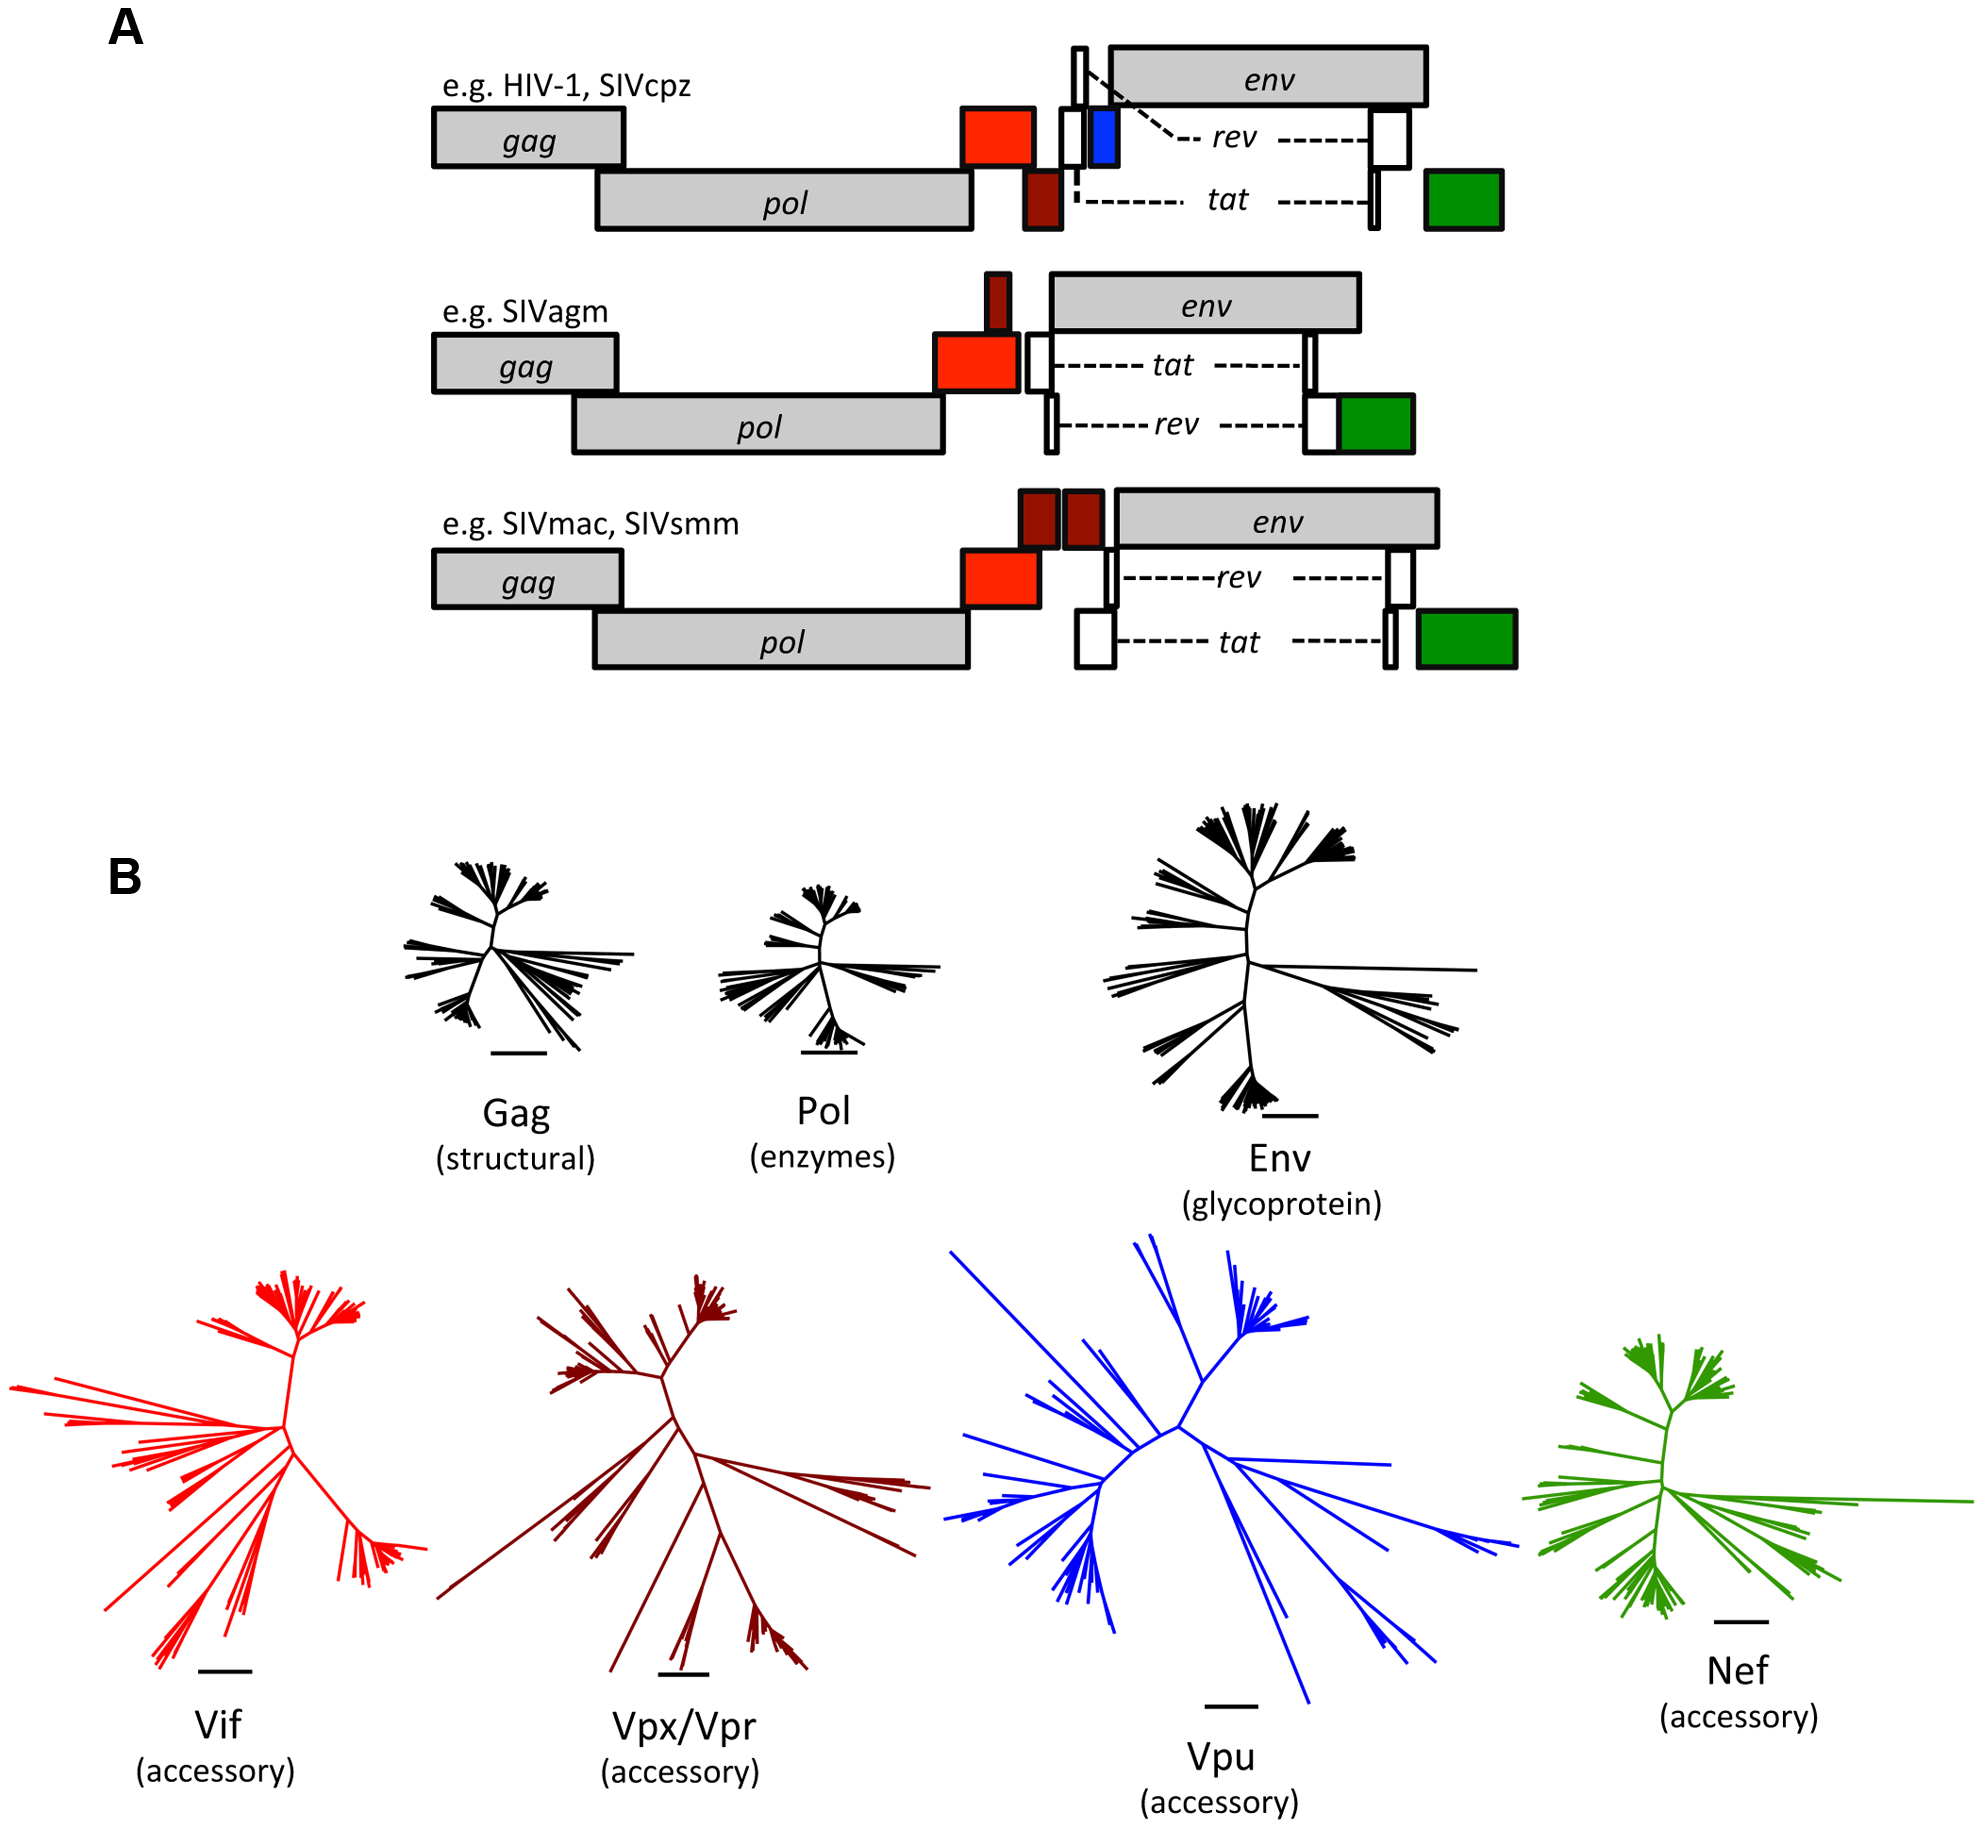 Accessory proteins are the most diverse of the primate lentivirus proteins.